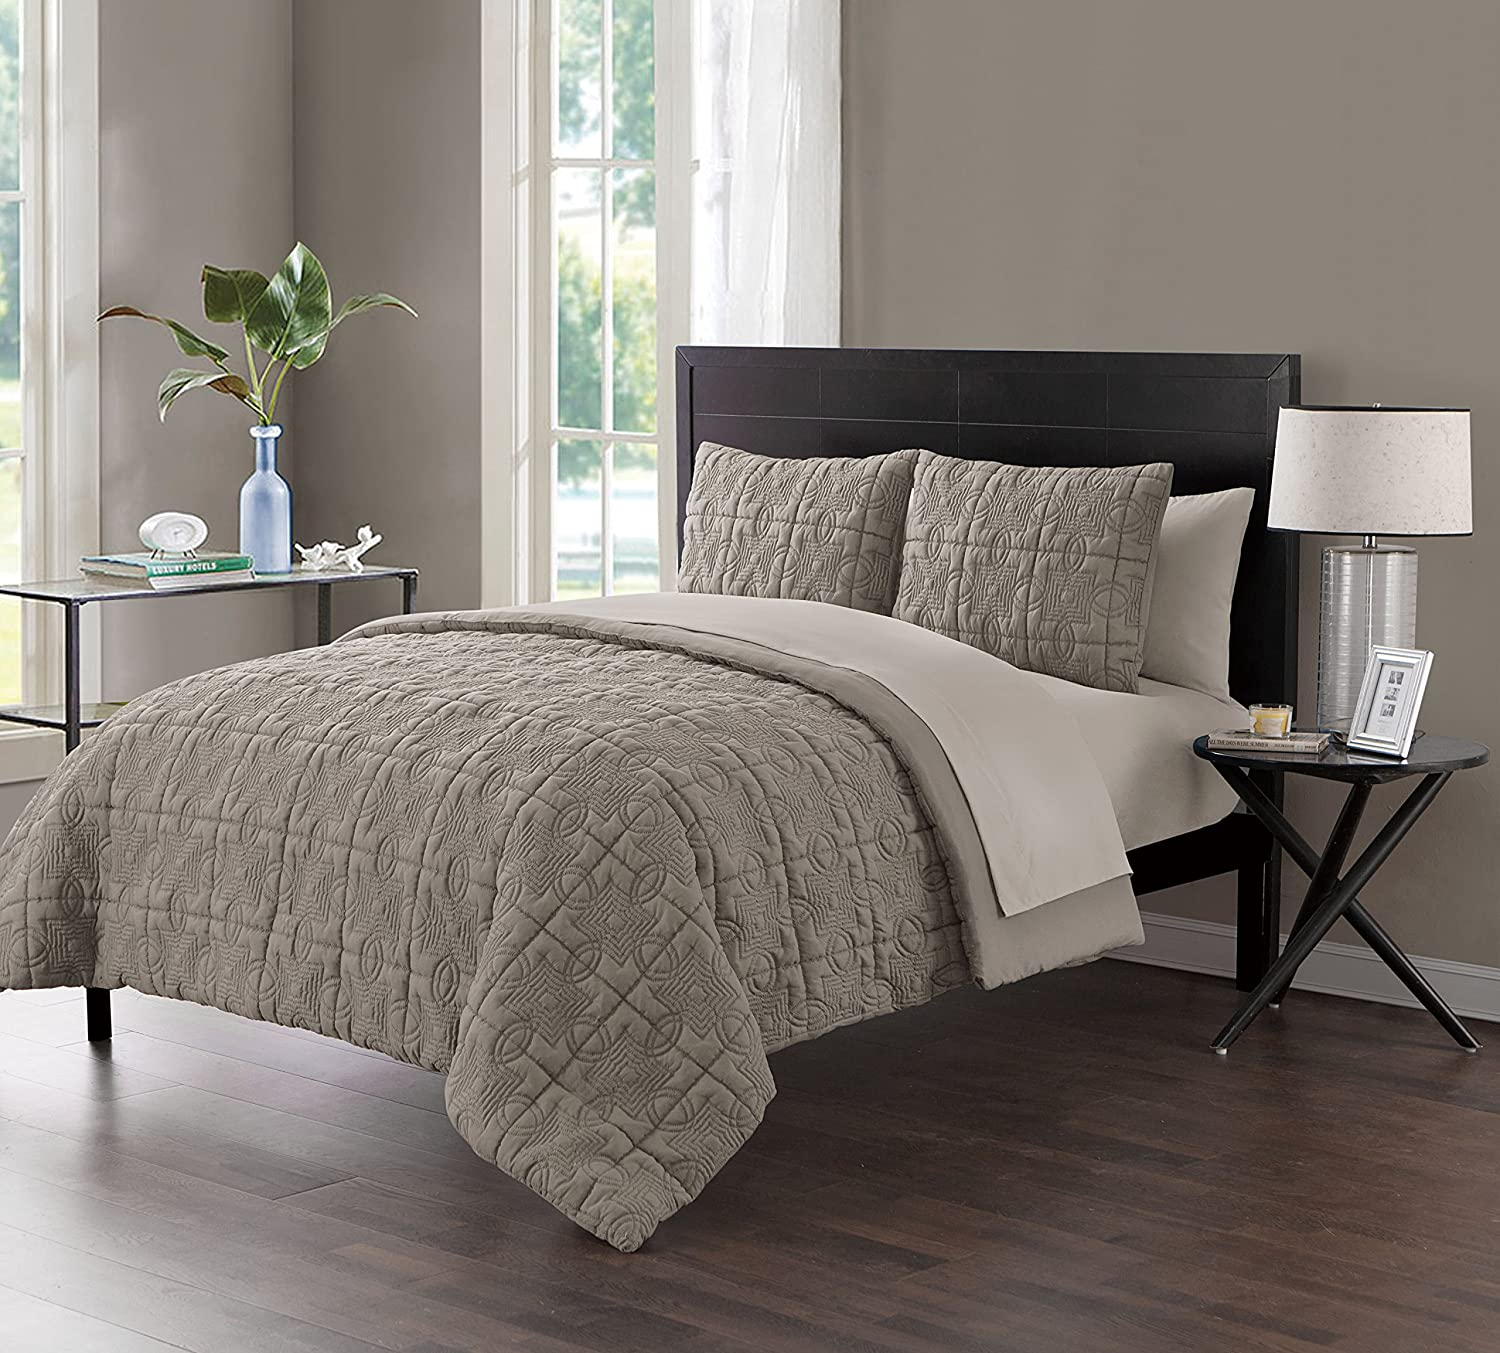 Queen Size Complete BED-IN-A-BAG in Taupe Embossed Texture Color Blocking 7 Pc Set w/ Sheets